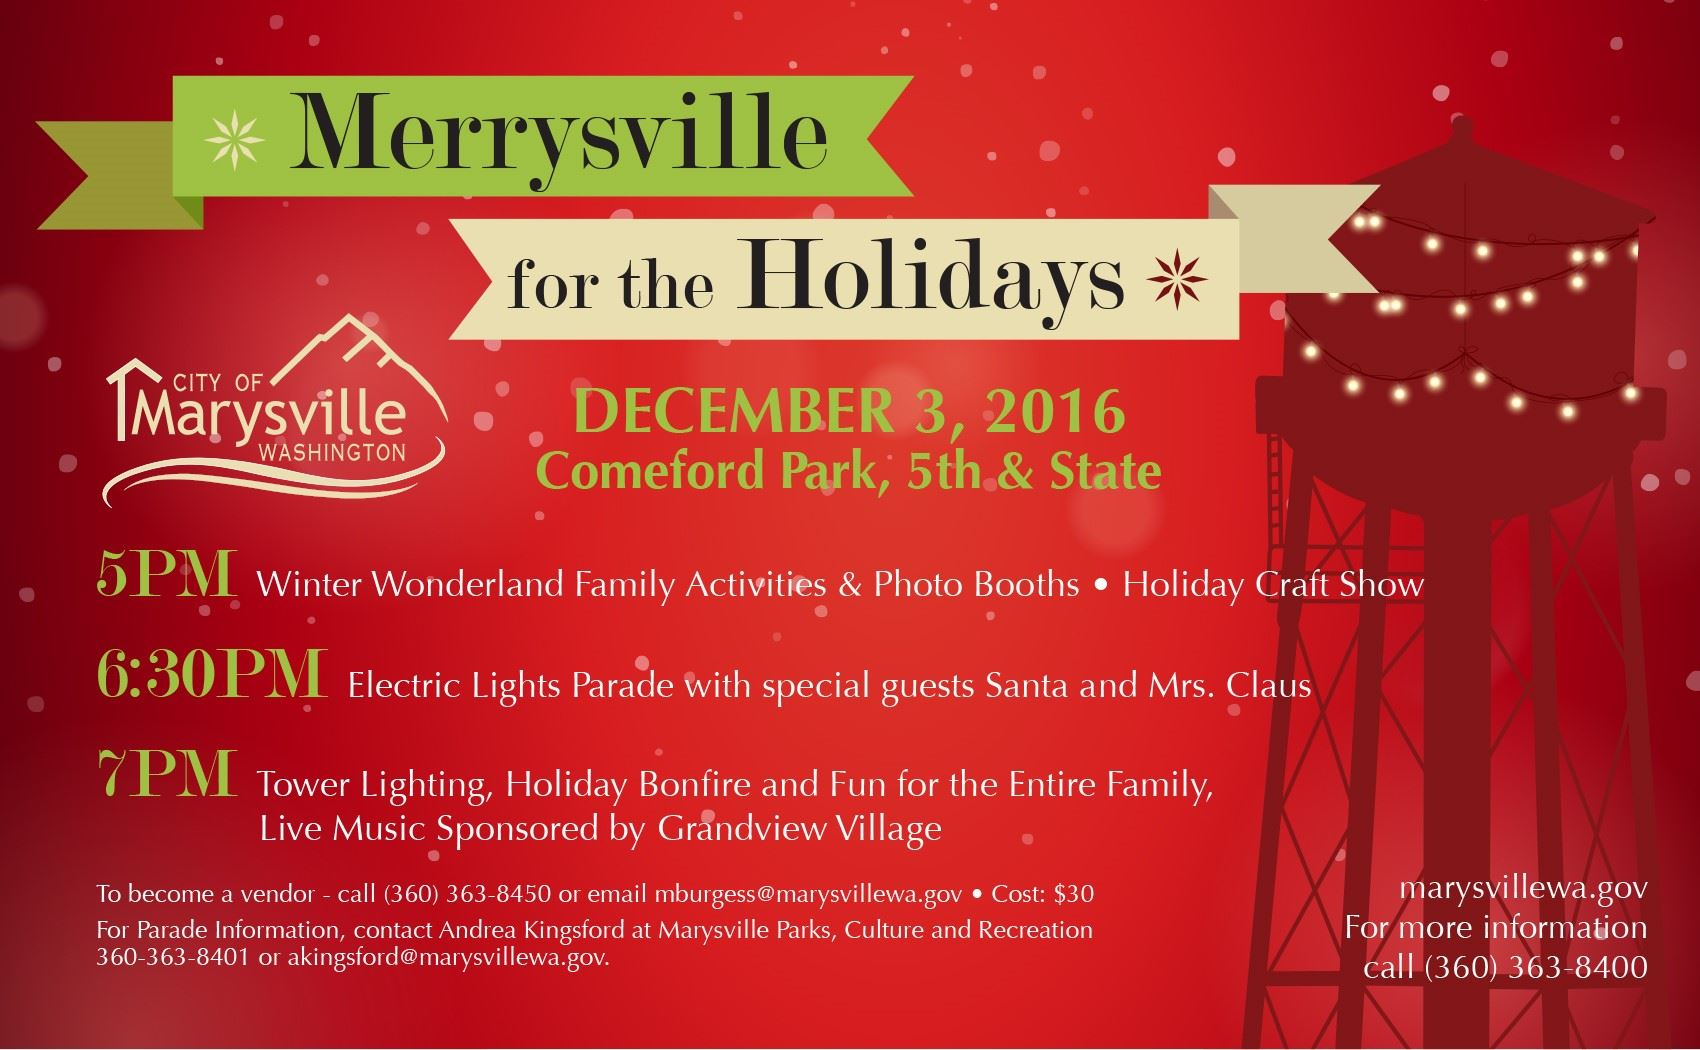 merrysville for the holidays 2016